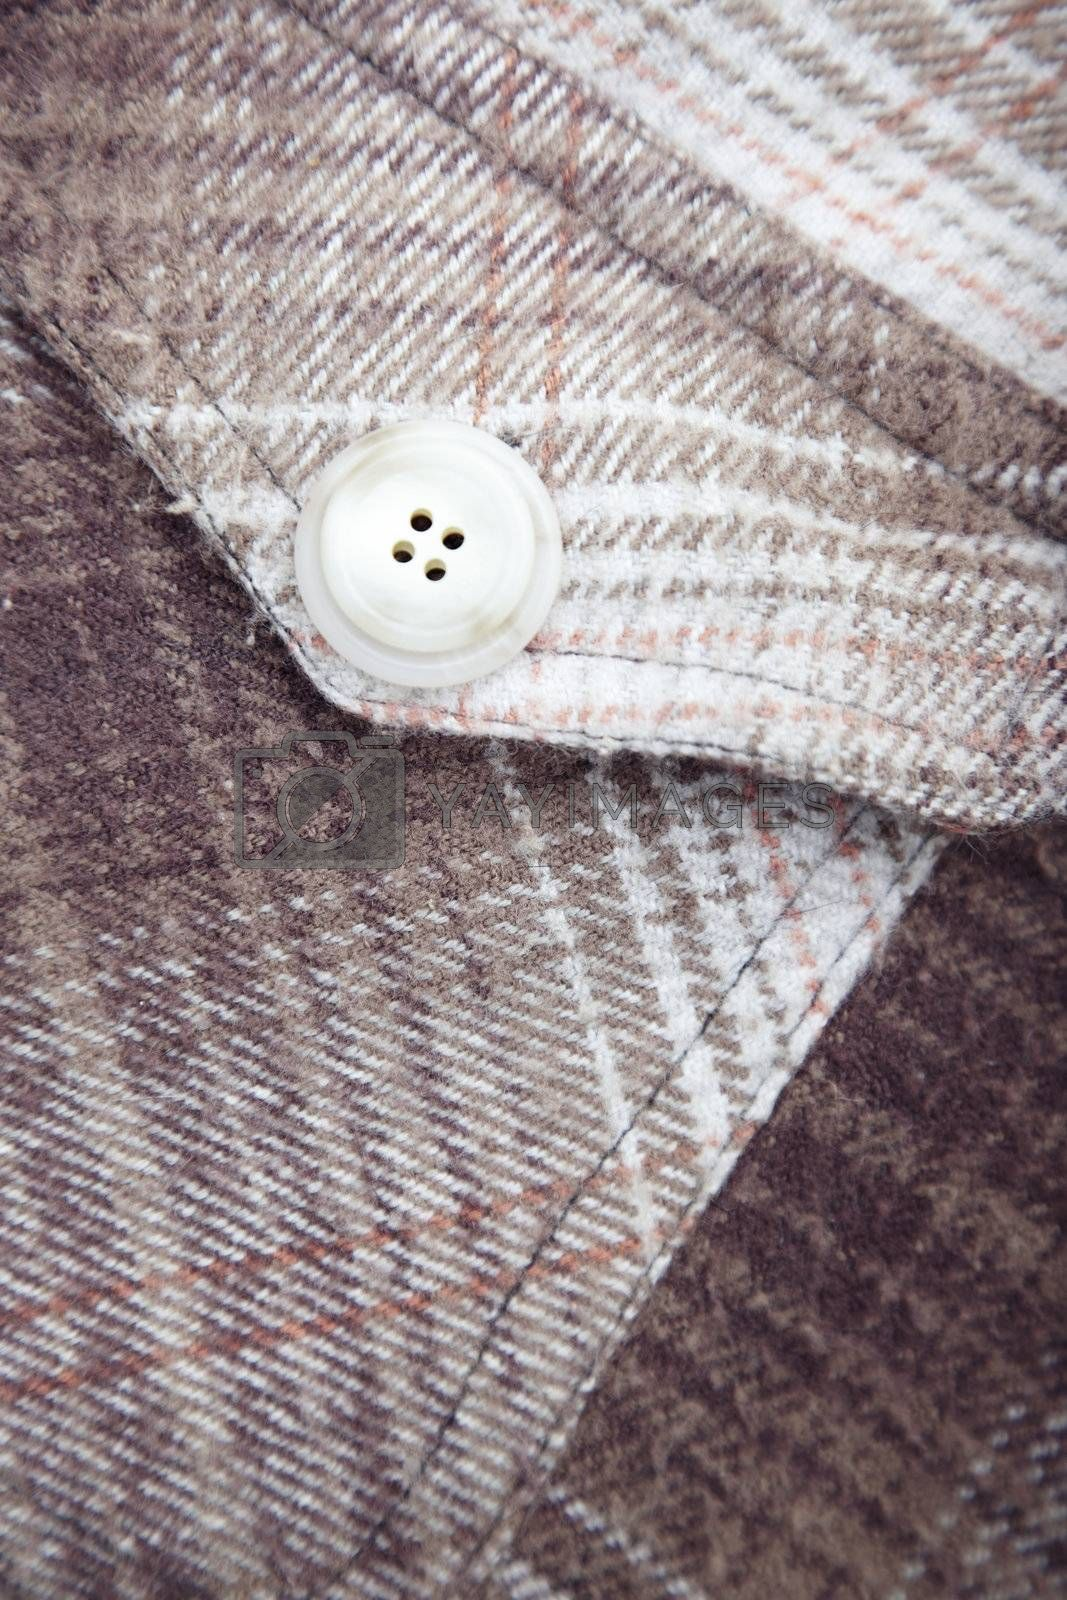 Pocket with button of the frieze shirt. Close-up photo